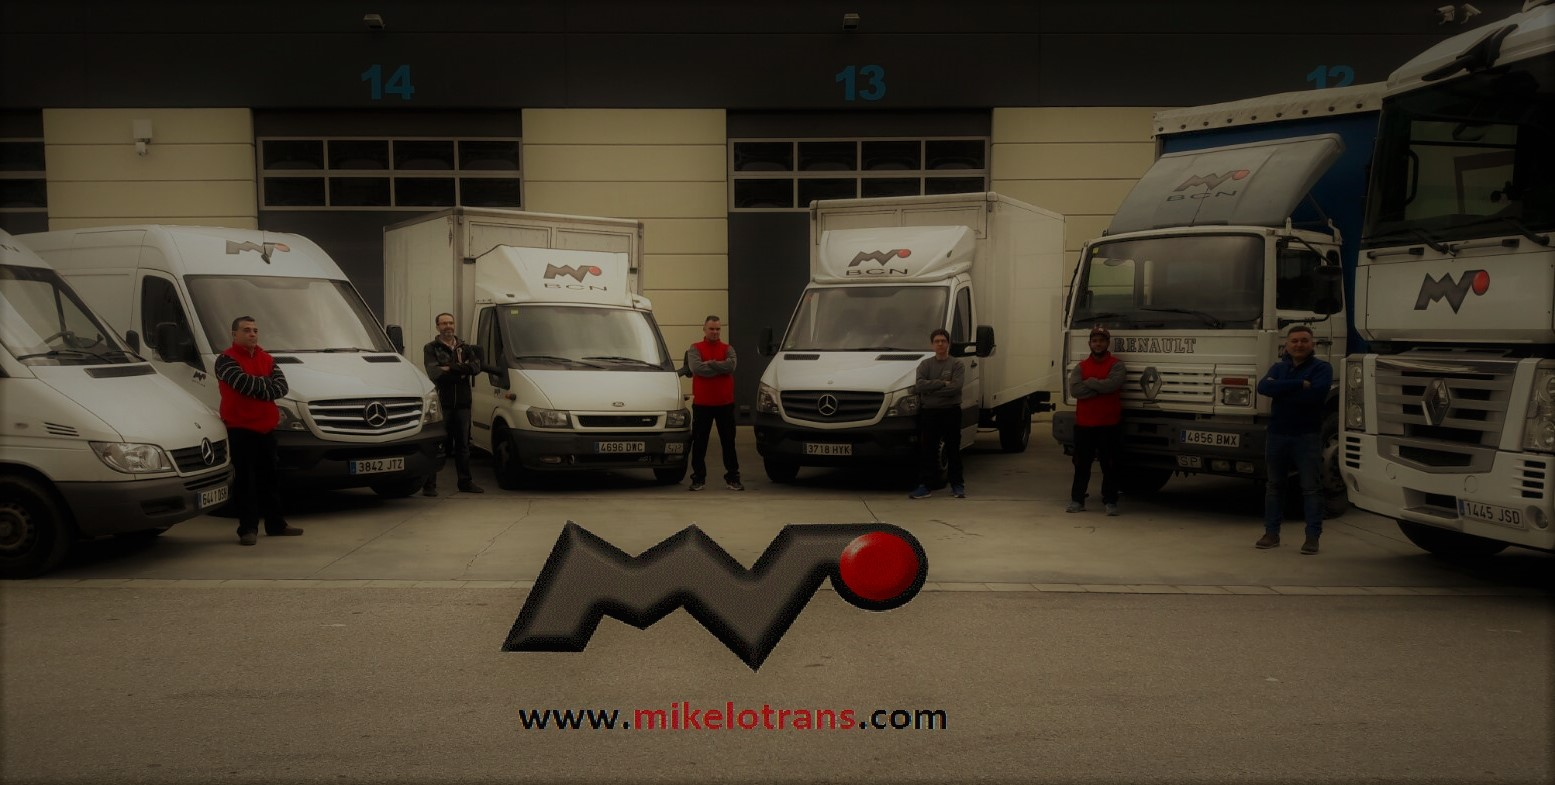 mikelotrans17